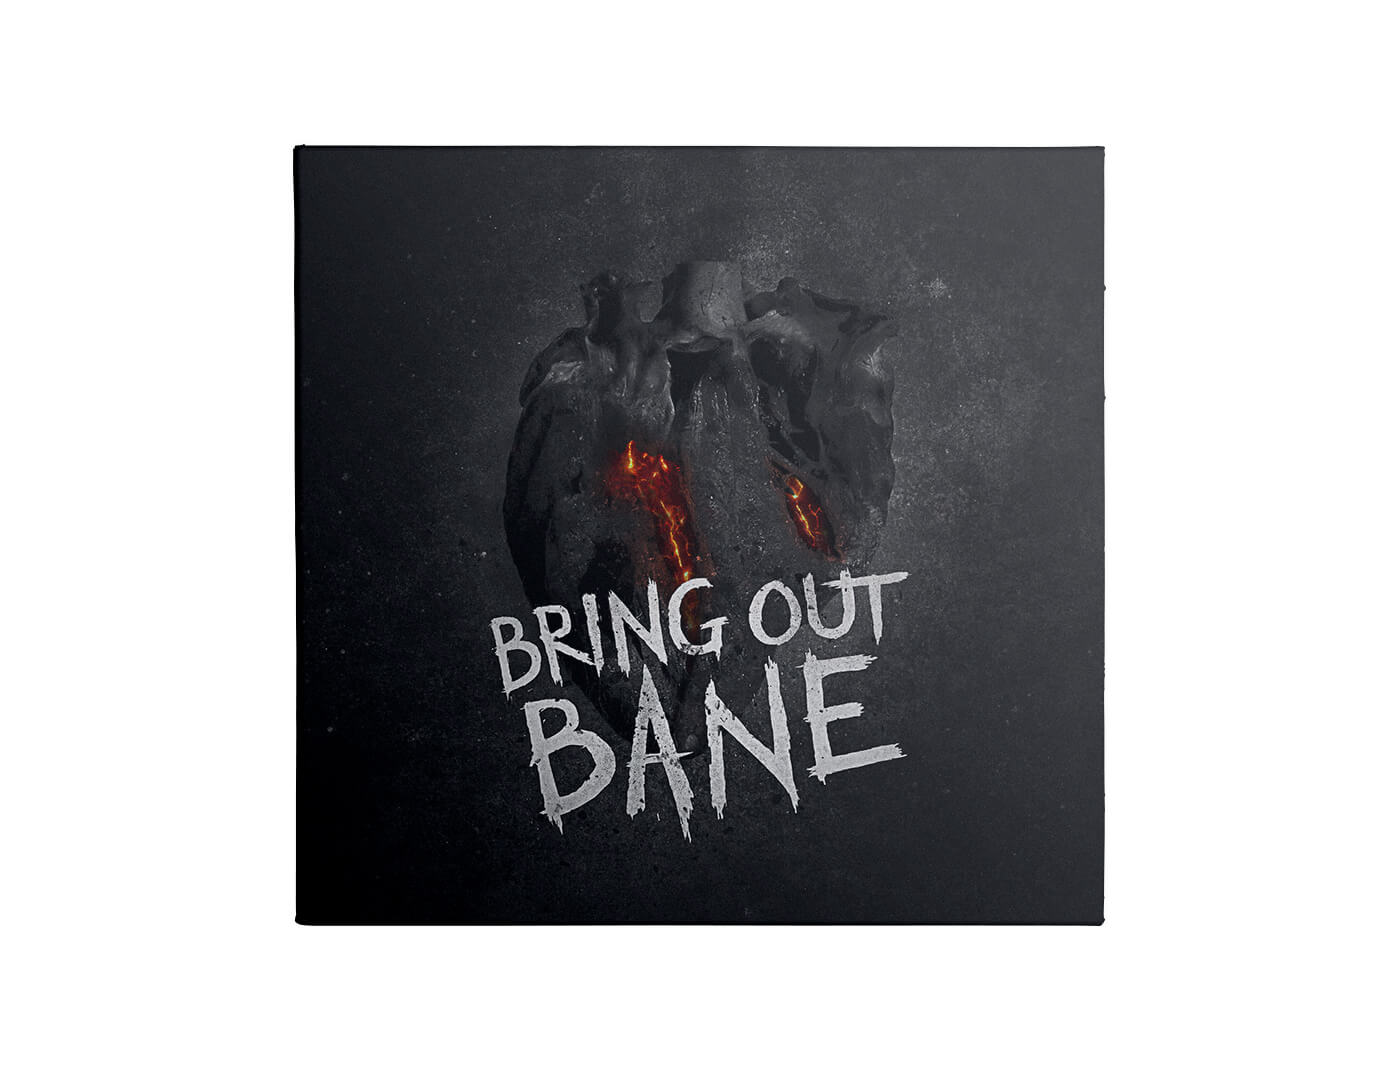 Bring Out Bane